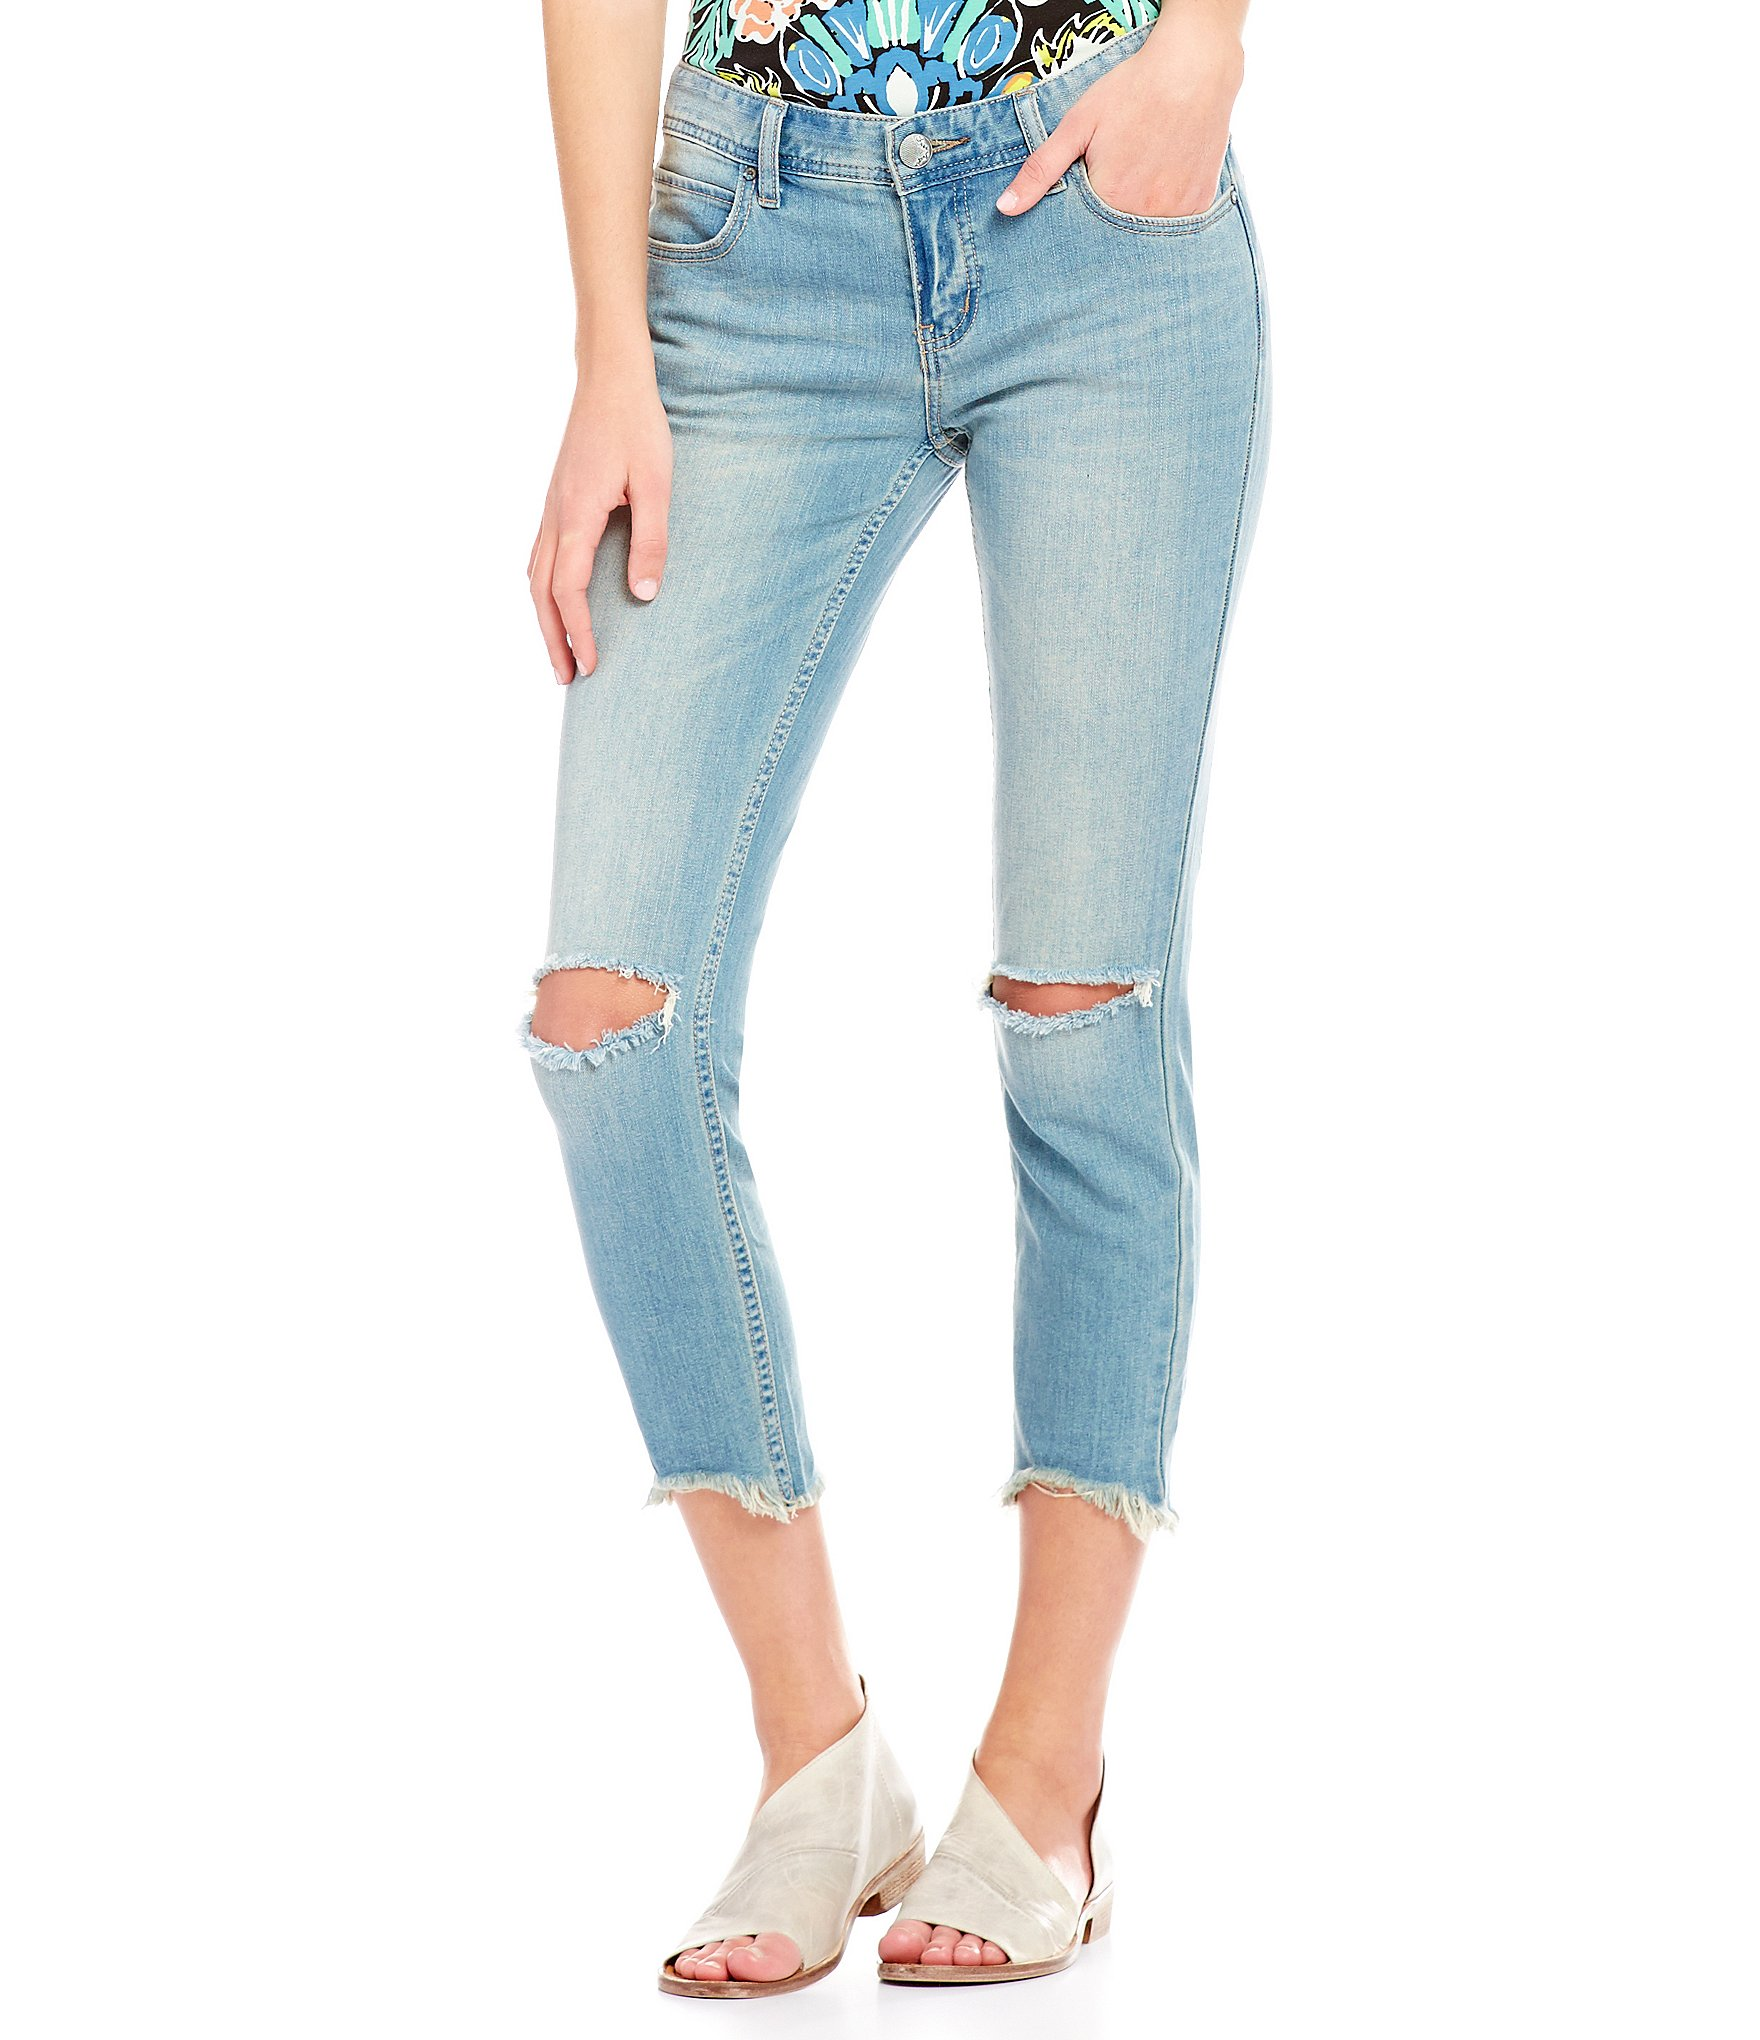 SHOPBOP - PAIGE Clothing FASTEST FREE SHIPPING WORLDWIDE on PAIGE Clothing & FREE EASY RETURNS. hidden honeypot link. Shop Men's Shop Men's Fashion at Items in your Shopbop cart will move with you. Maternity Verdugo Ankle Skinny Jeans $ $ $ PAIGE Shanni Cutout Tee $ $ $ PAIGE Vintage Hoxton Ankle Peg.